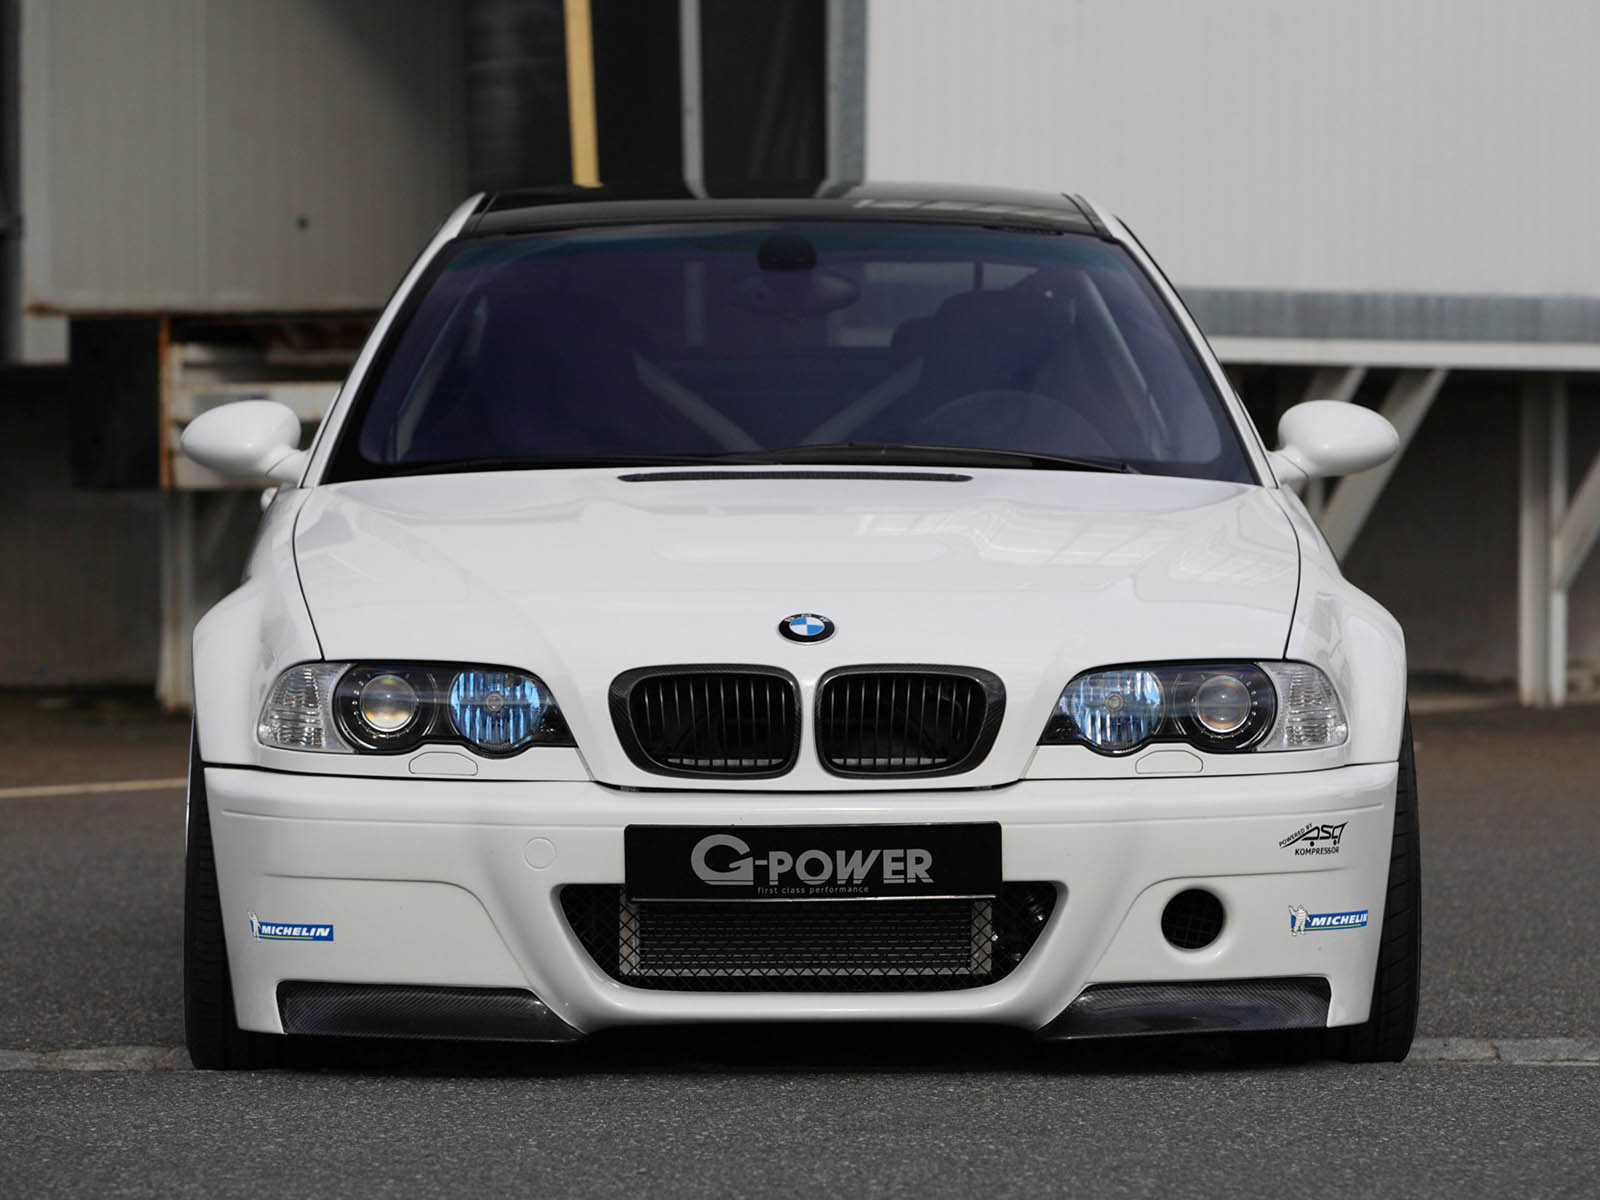 wallpapers bmw m3 e46 csl car wallpapers. Black Bedroom Furniture Sets. Home Design Ideas